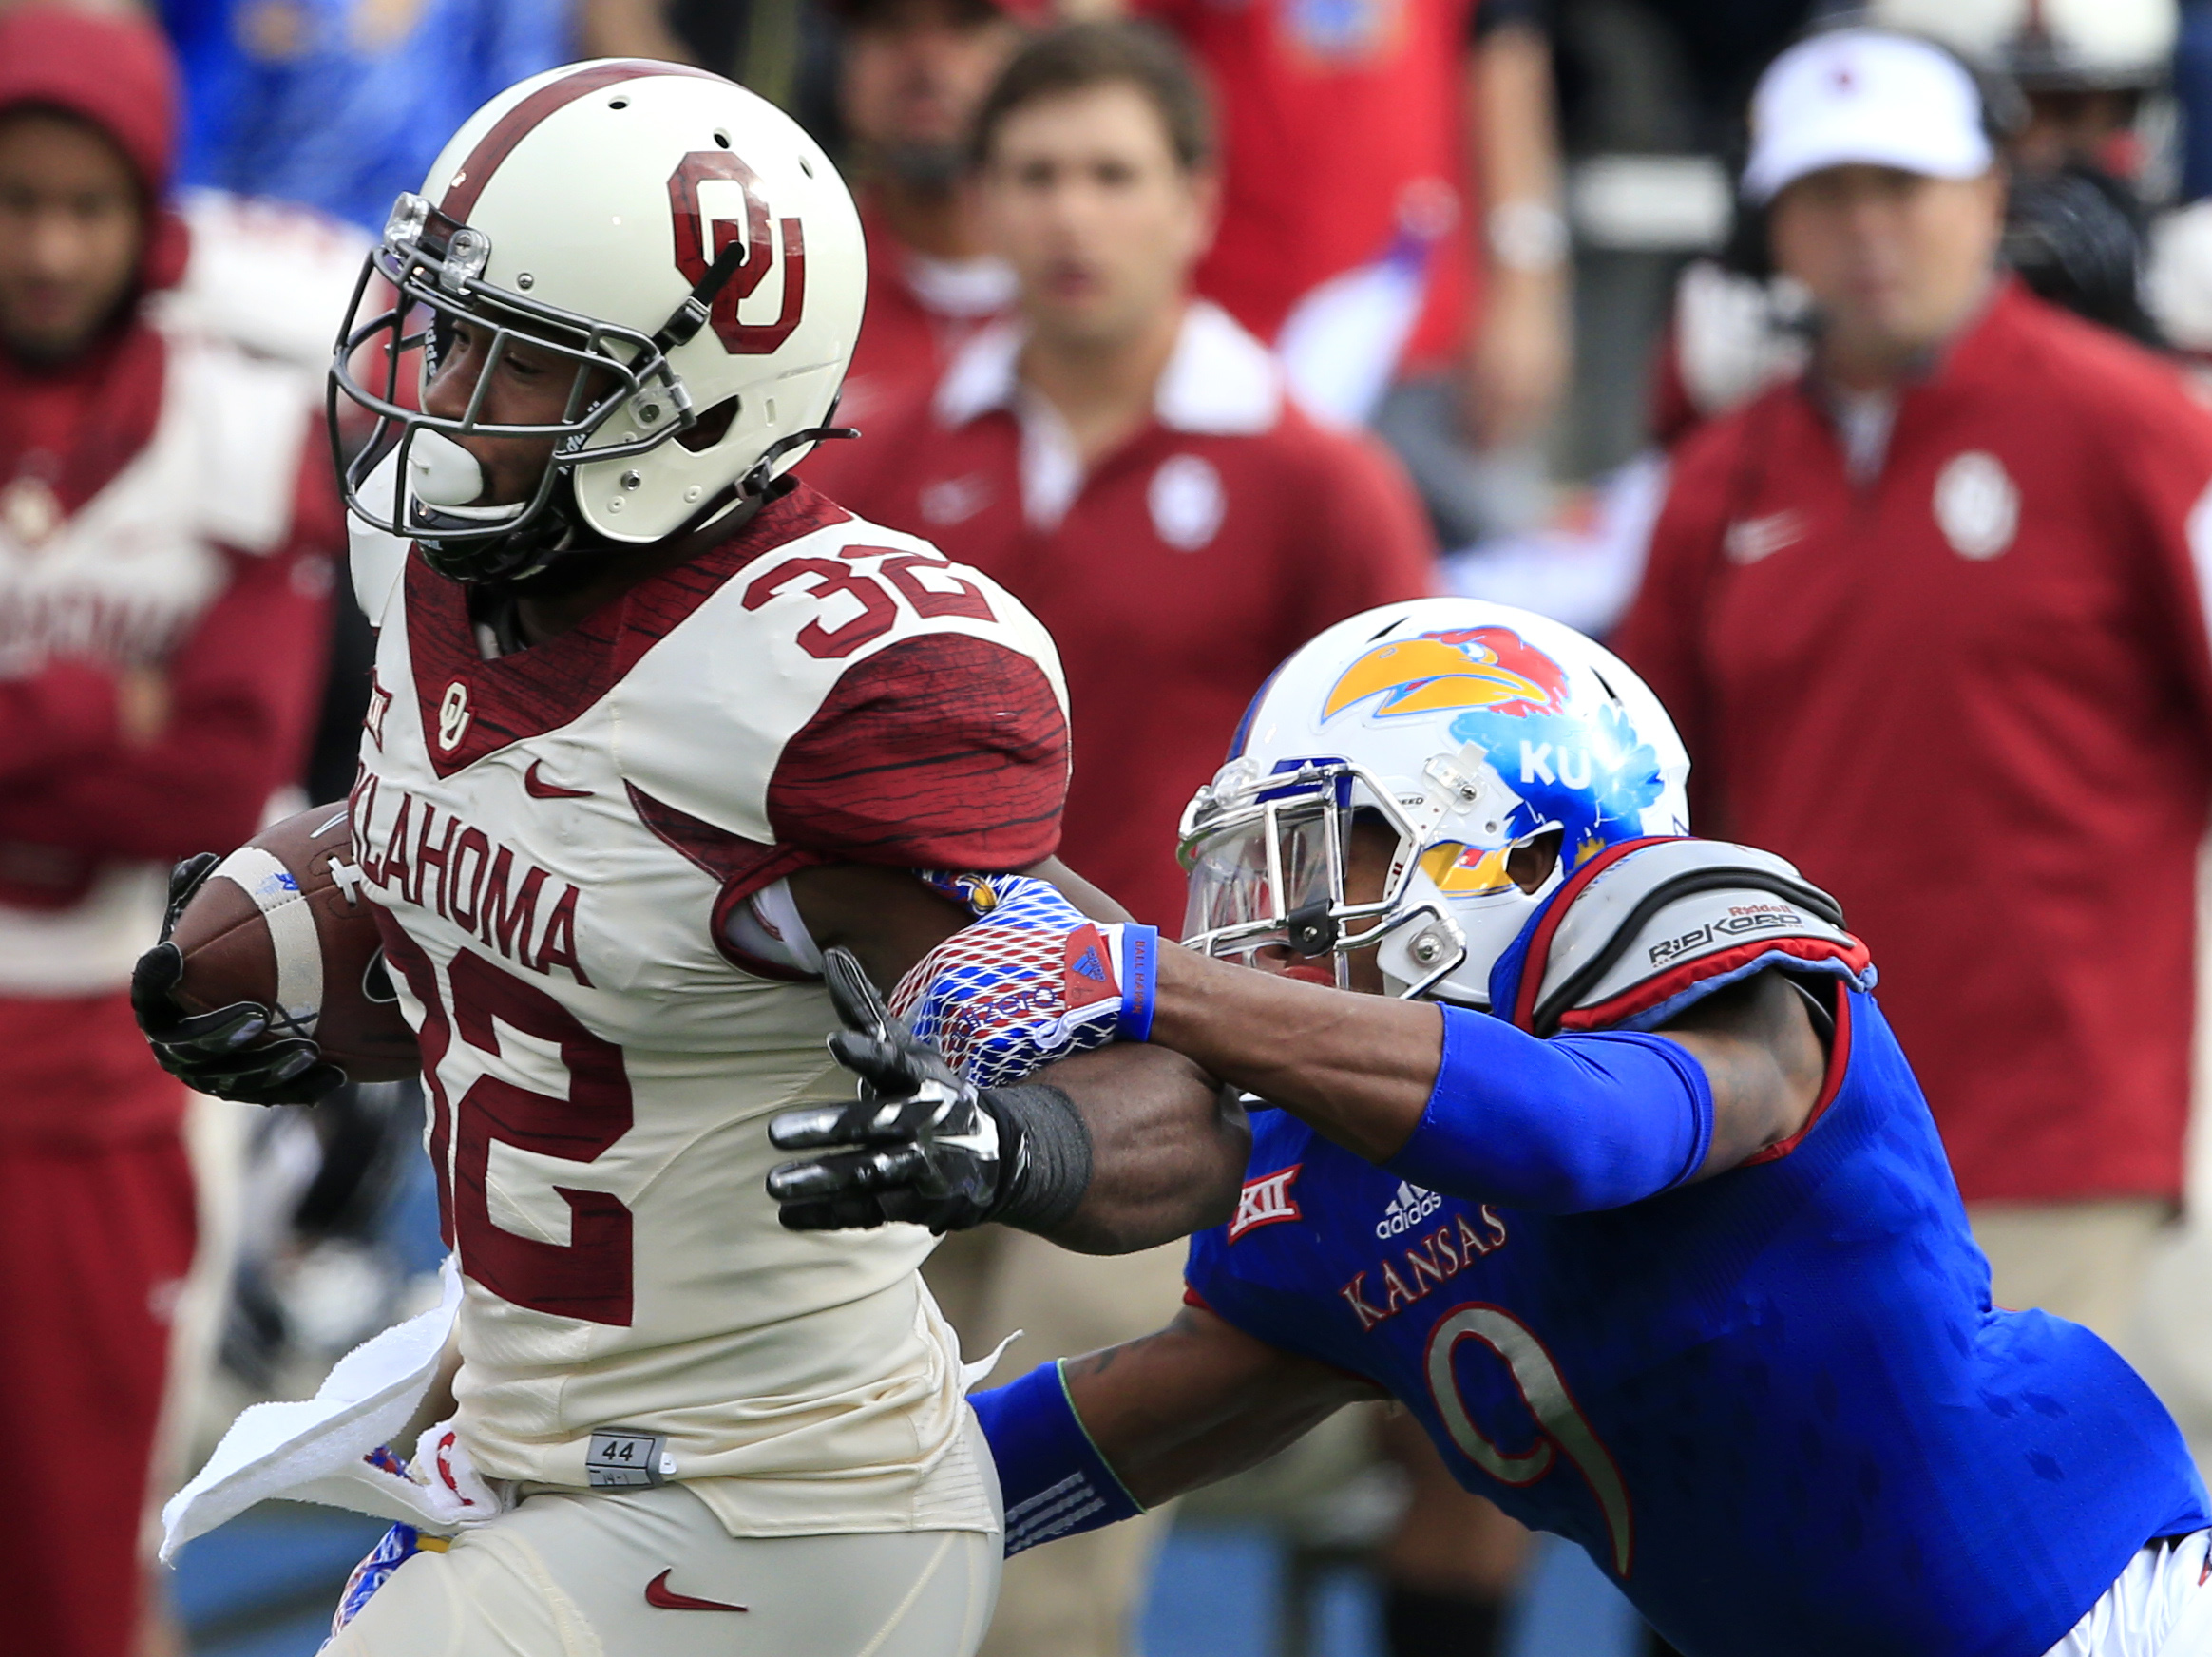 Kansas safety Fish Smithson (9) tackles Oklahoma running back Samaje Perine (32) during the first half of an NCAA college football game in Lawrence, Kan., Saturday, Oct. 31, 2015. (Orlin Wagner/Associated Press)